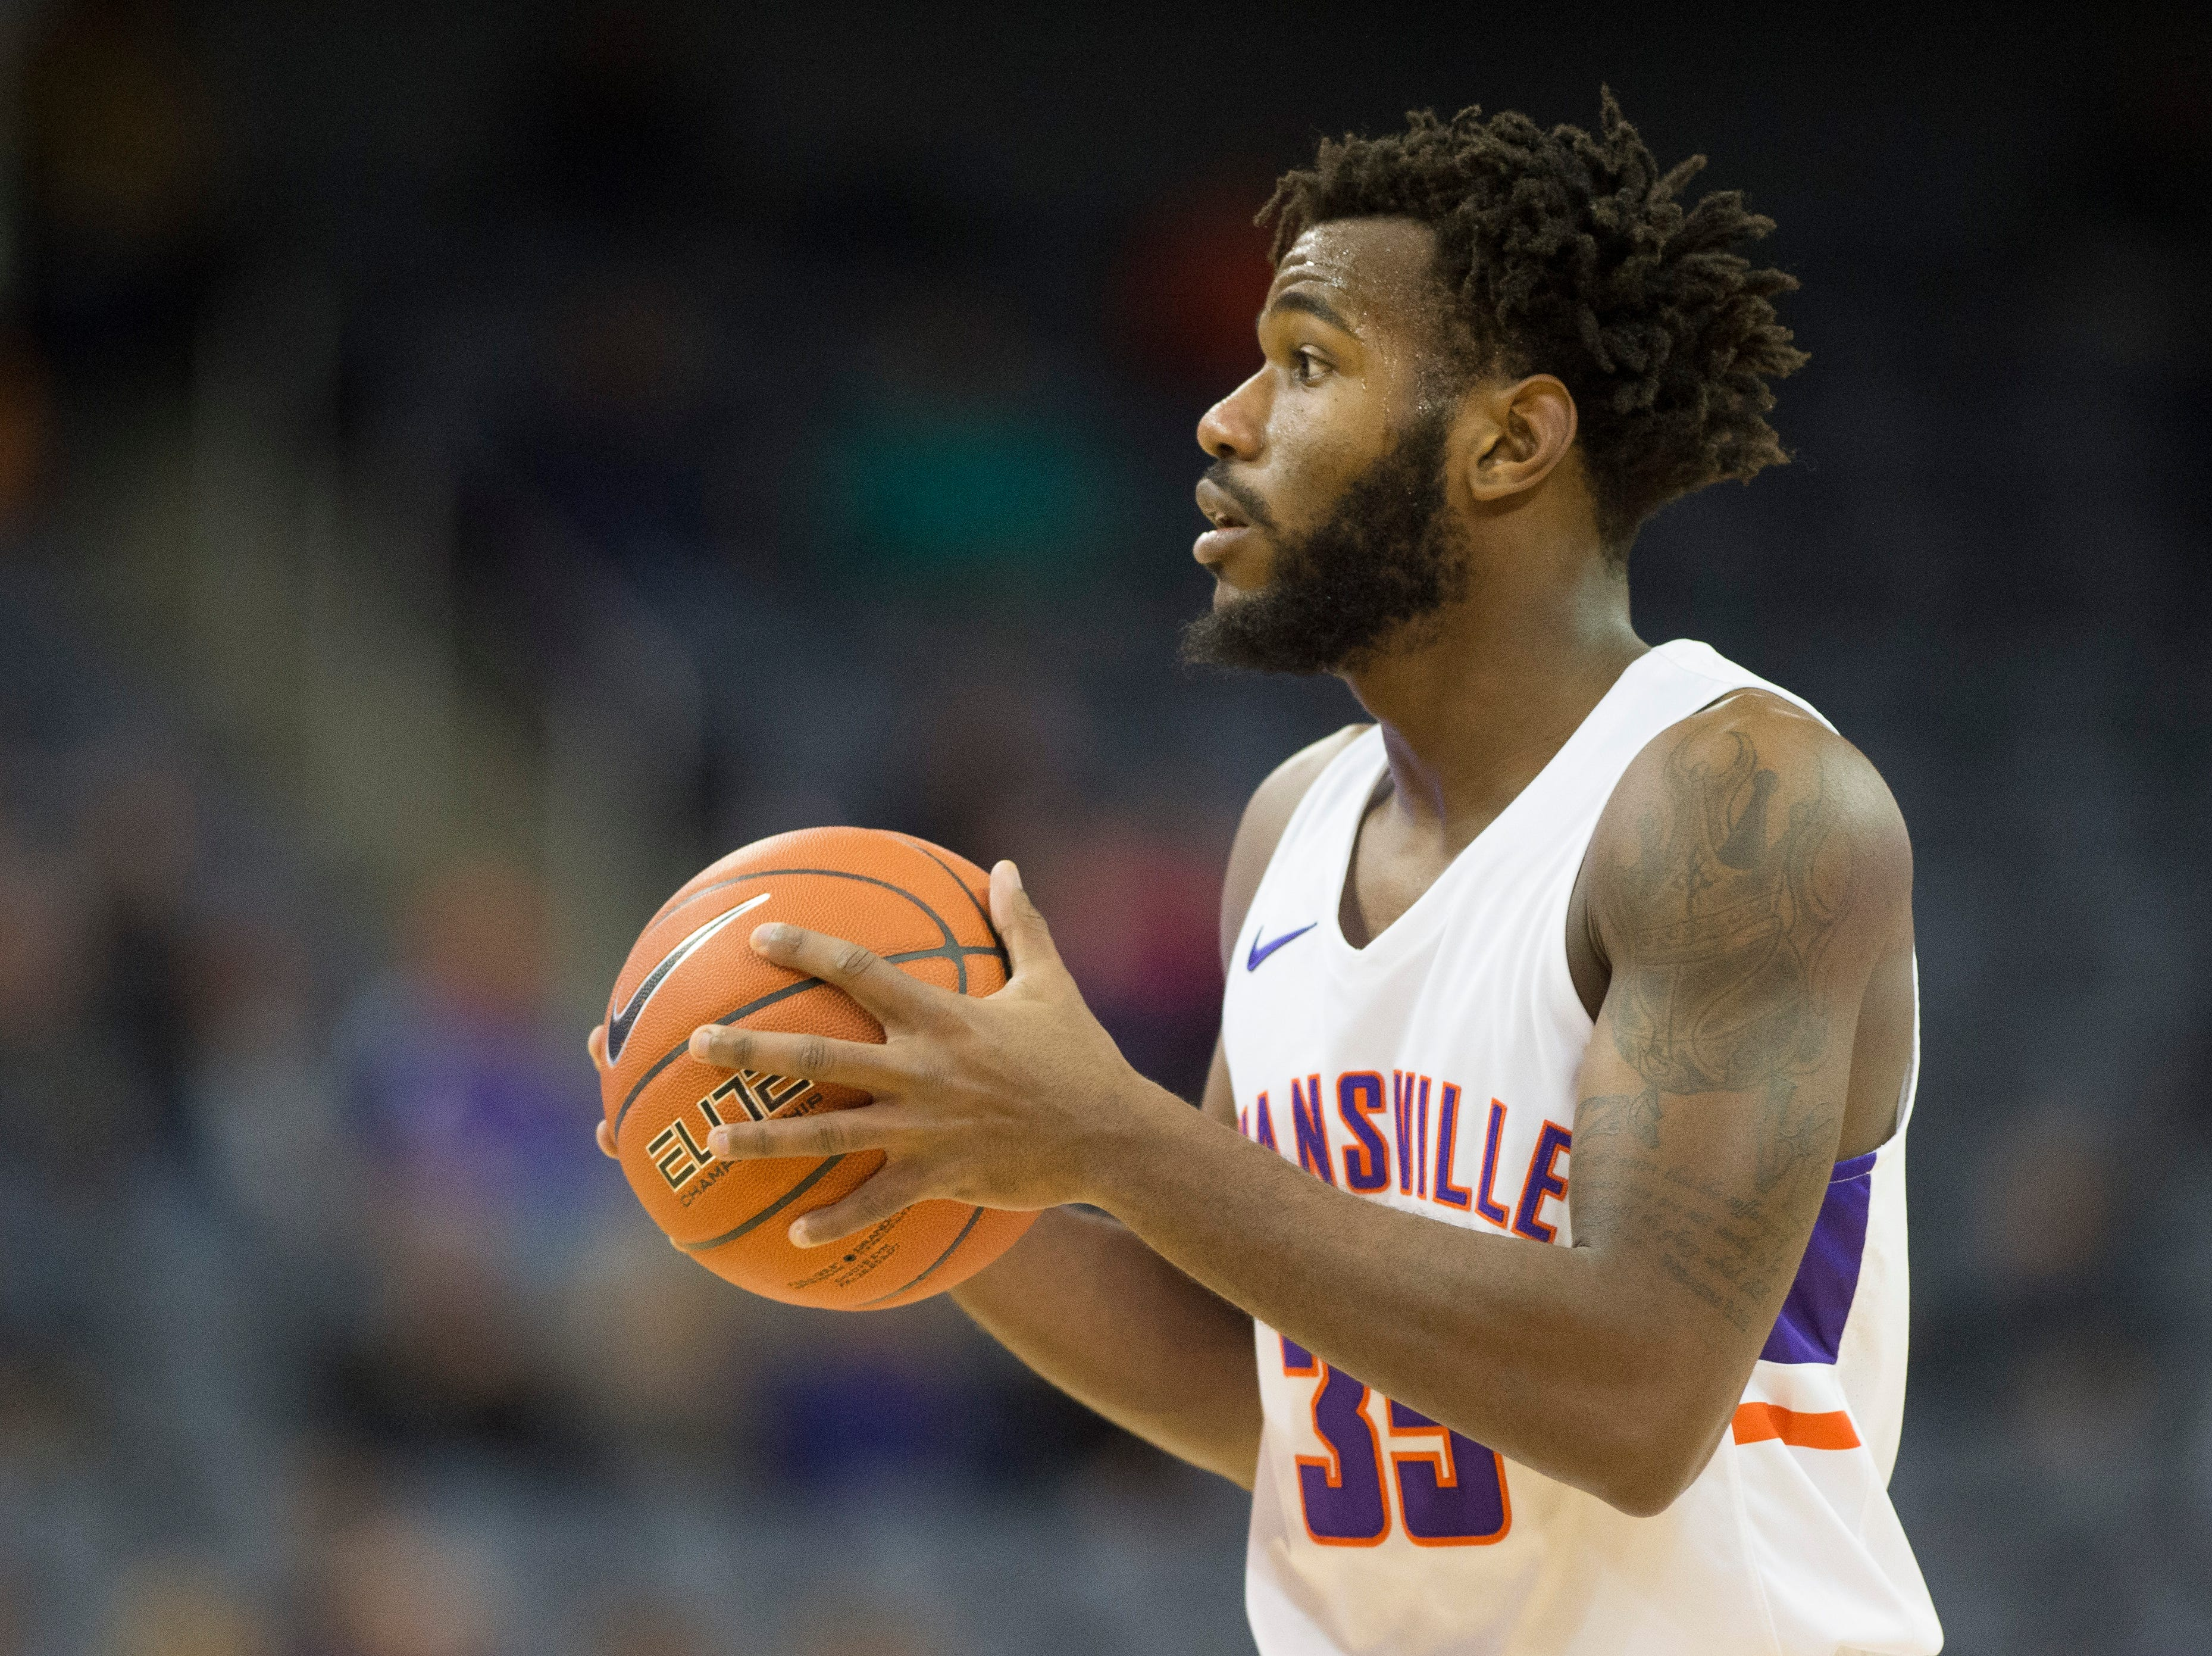 UE's John Hall (35) looks to pass the ball during the UE vs Wyoming game at the Ford Center Wednesday, Nov. 28, 2018. UE won 86-76.